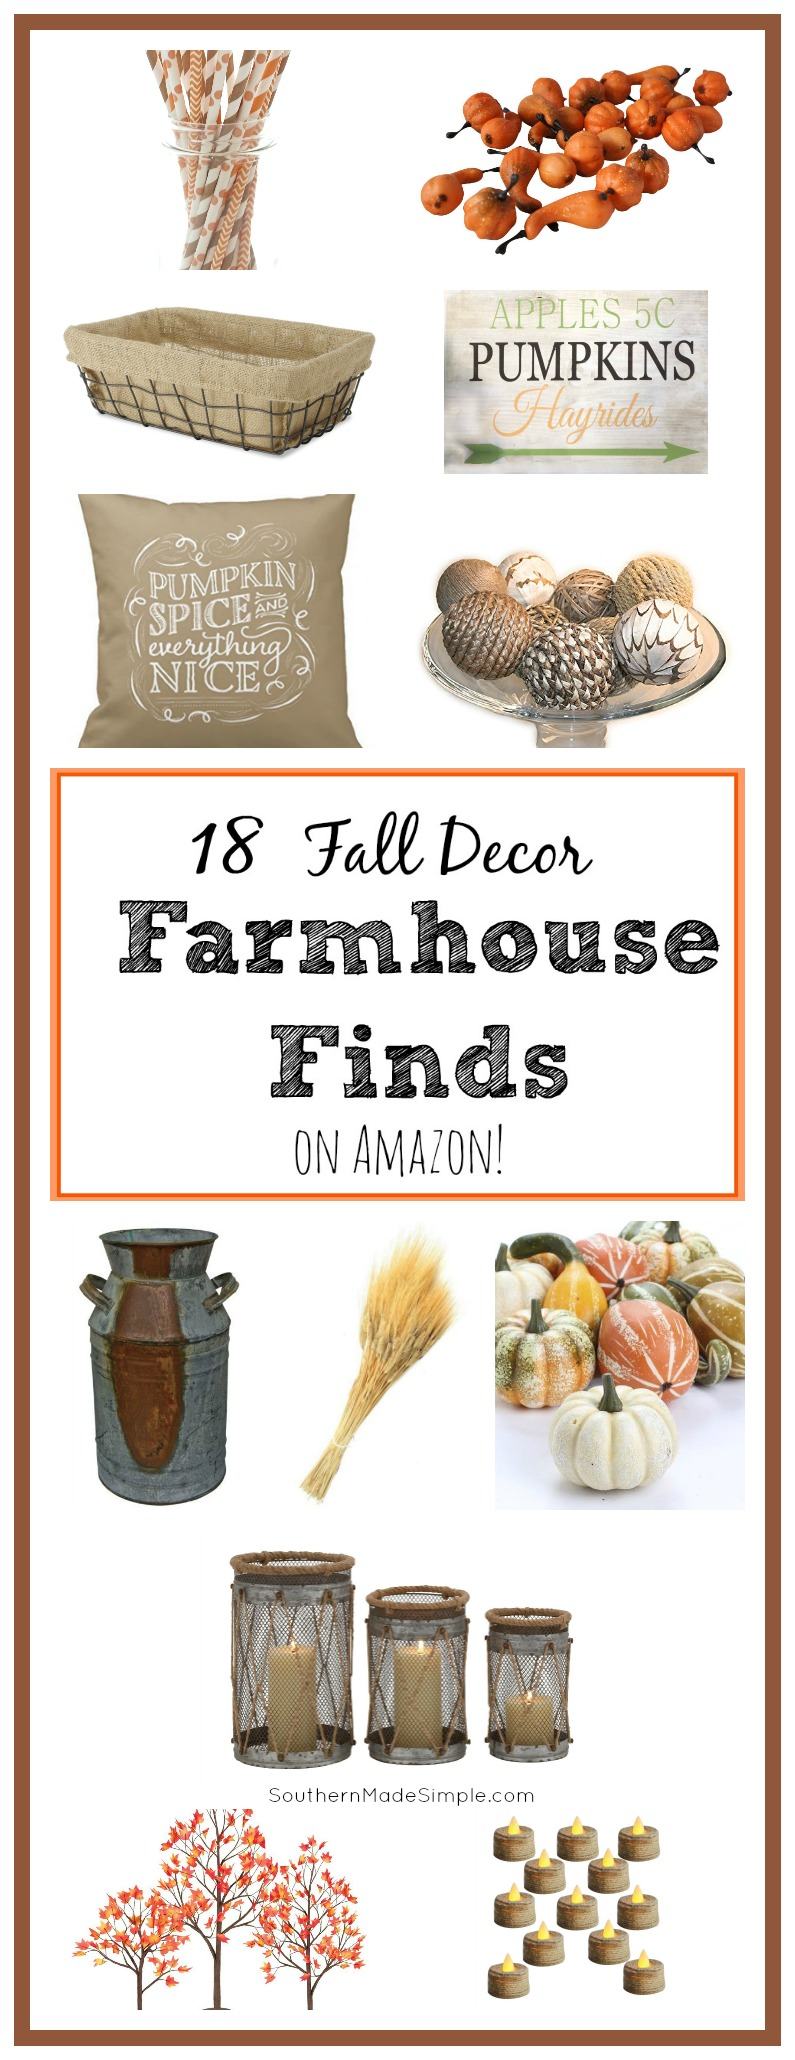 18 Fall Farmhouse Decor Items available on Amazon! Hello, 2 day shipping!